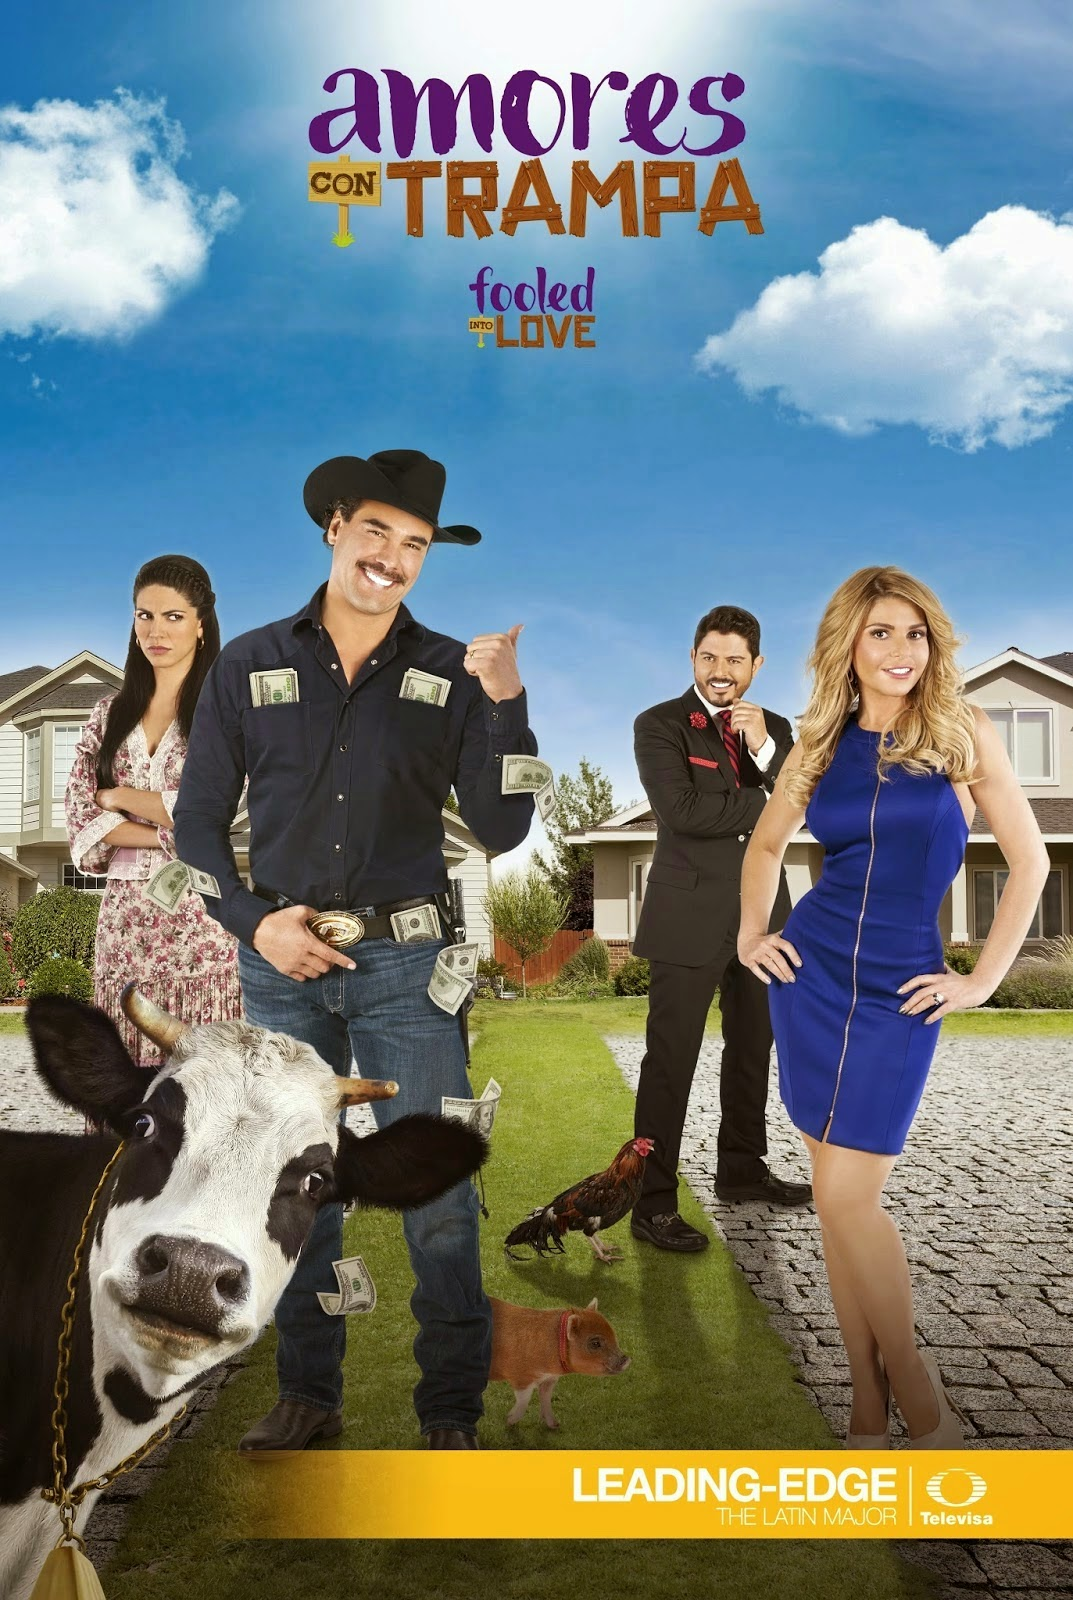 http://www.mastelenovelas.com/search/label/Amores%20con%20trampa